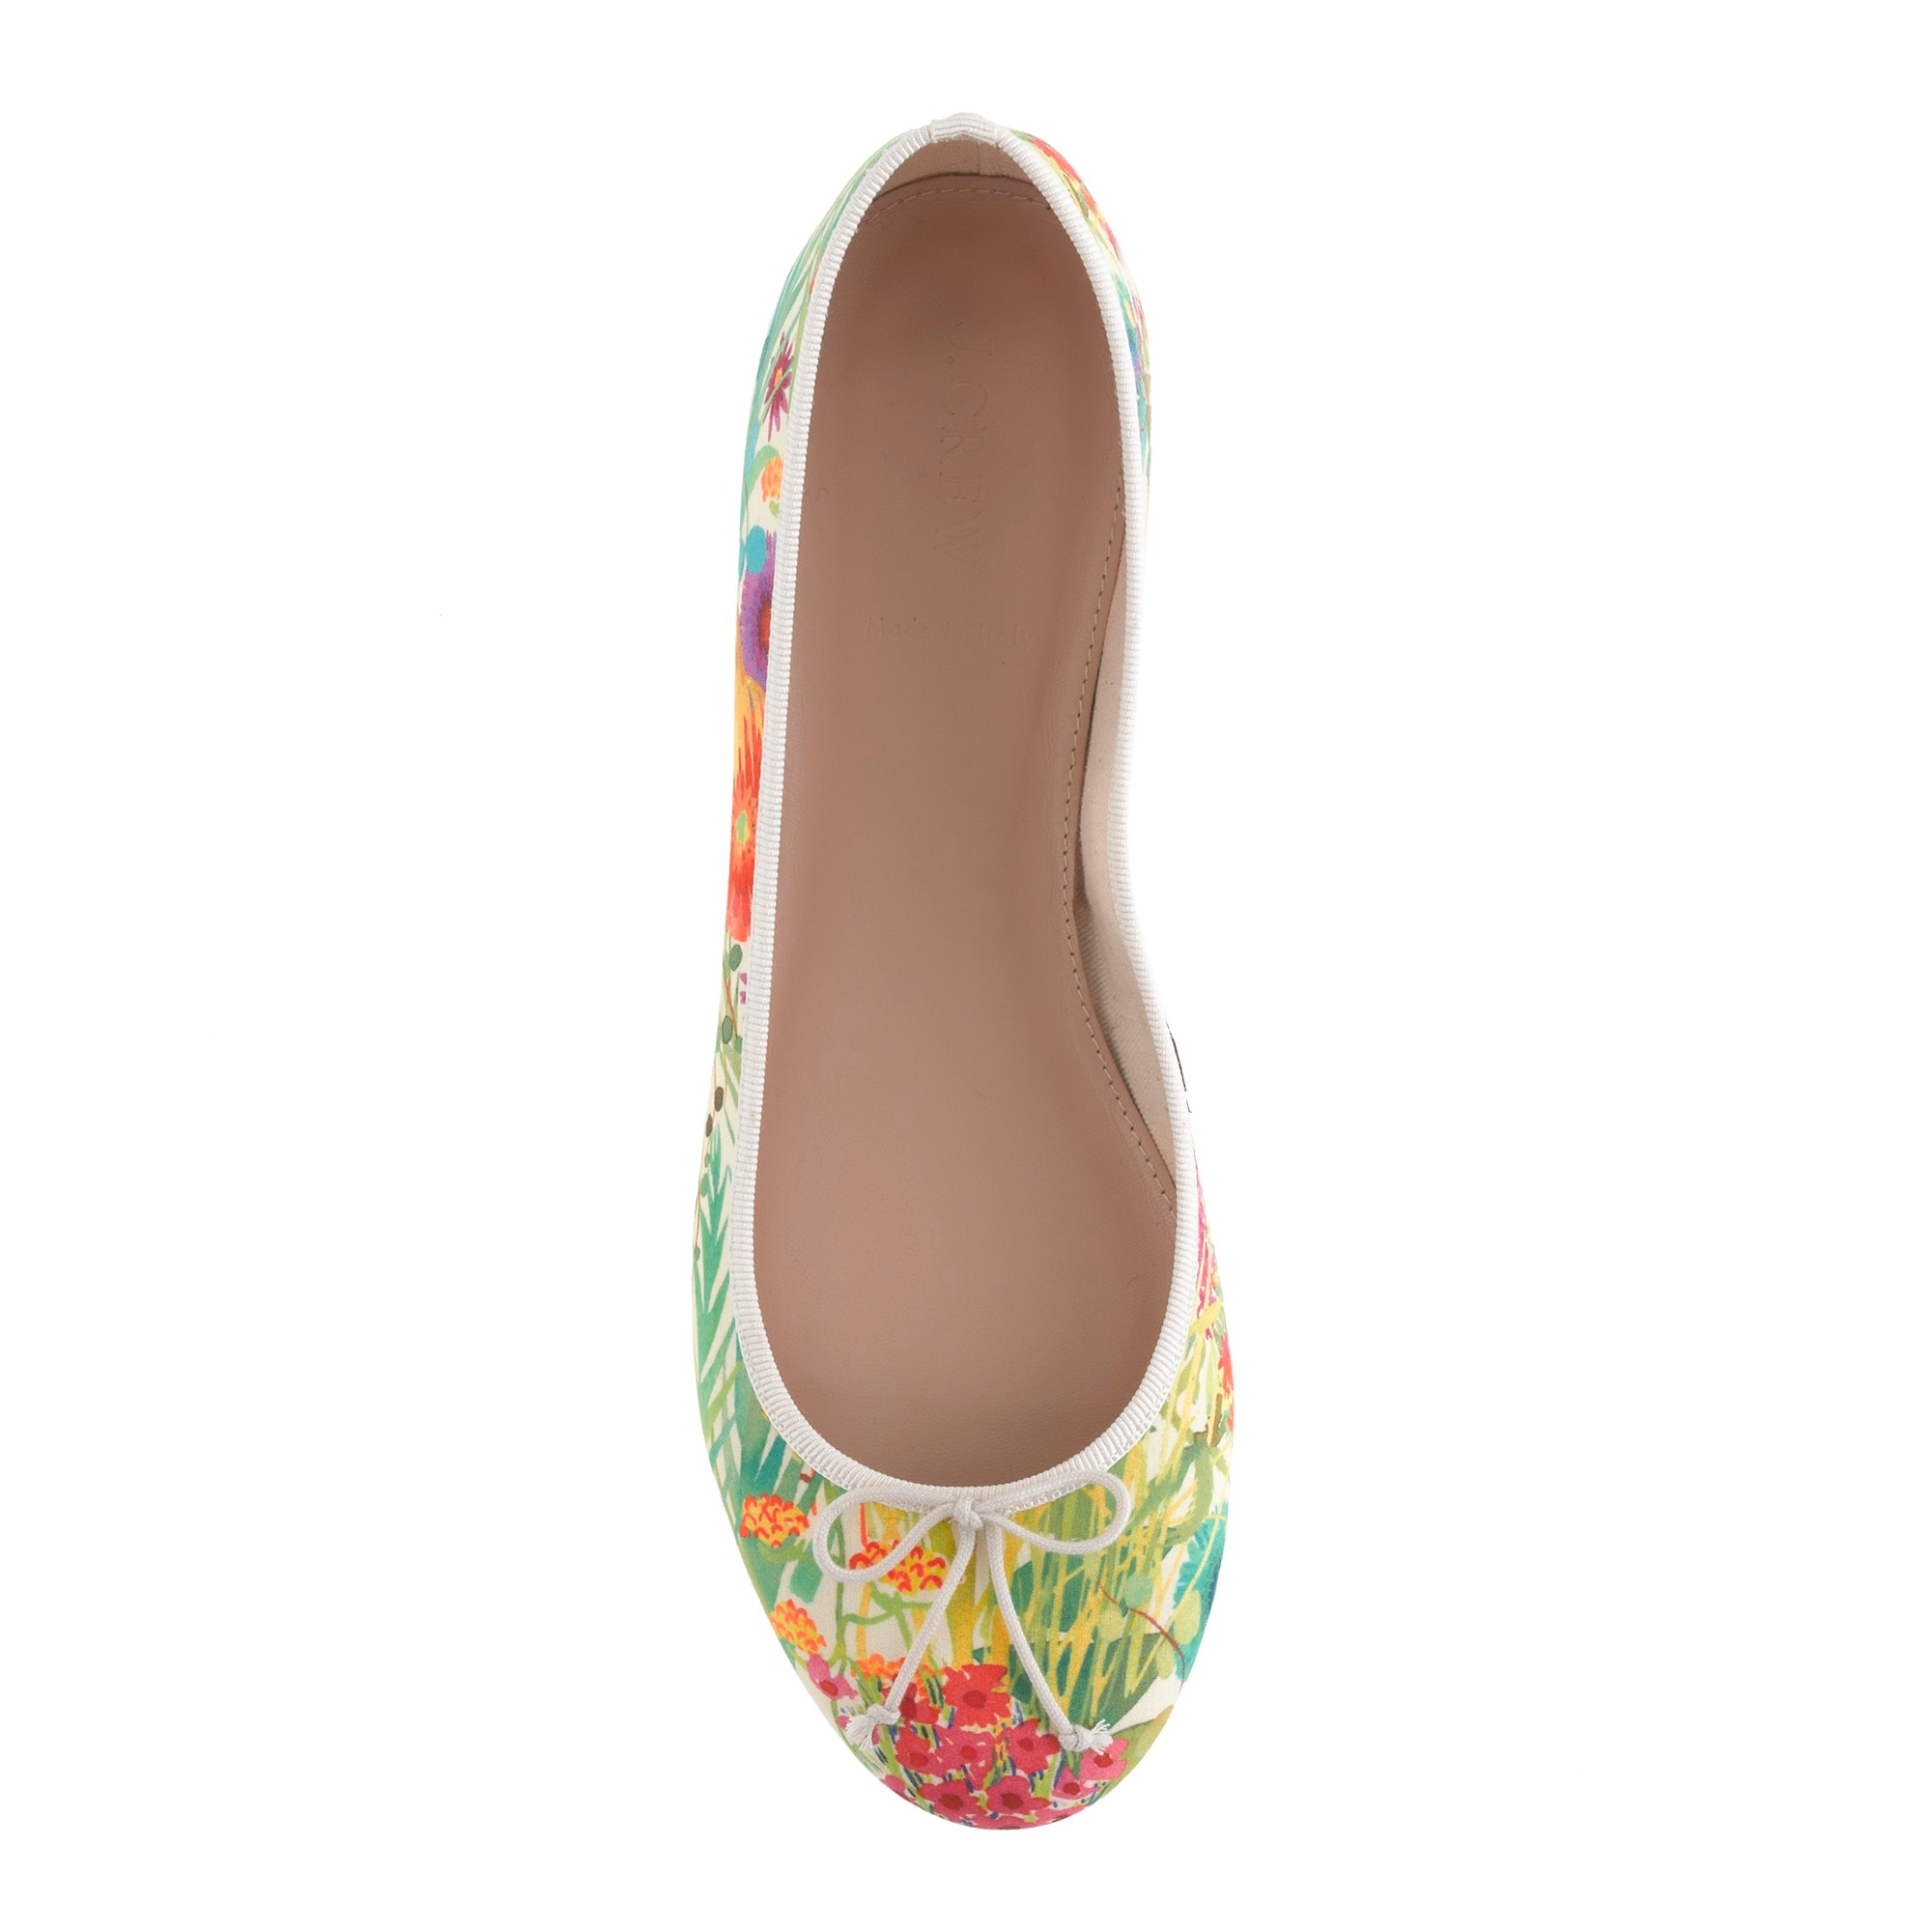 Image 1 for Collection classic Liberty floral ballet flats